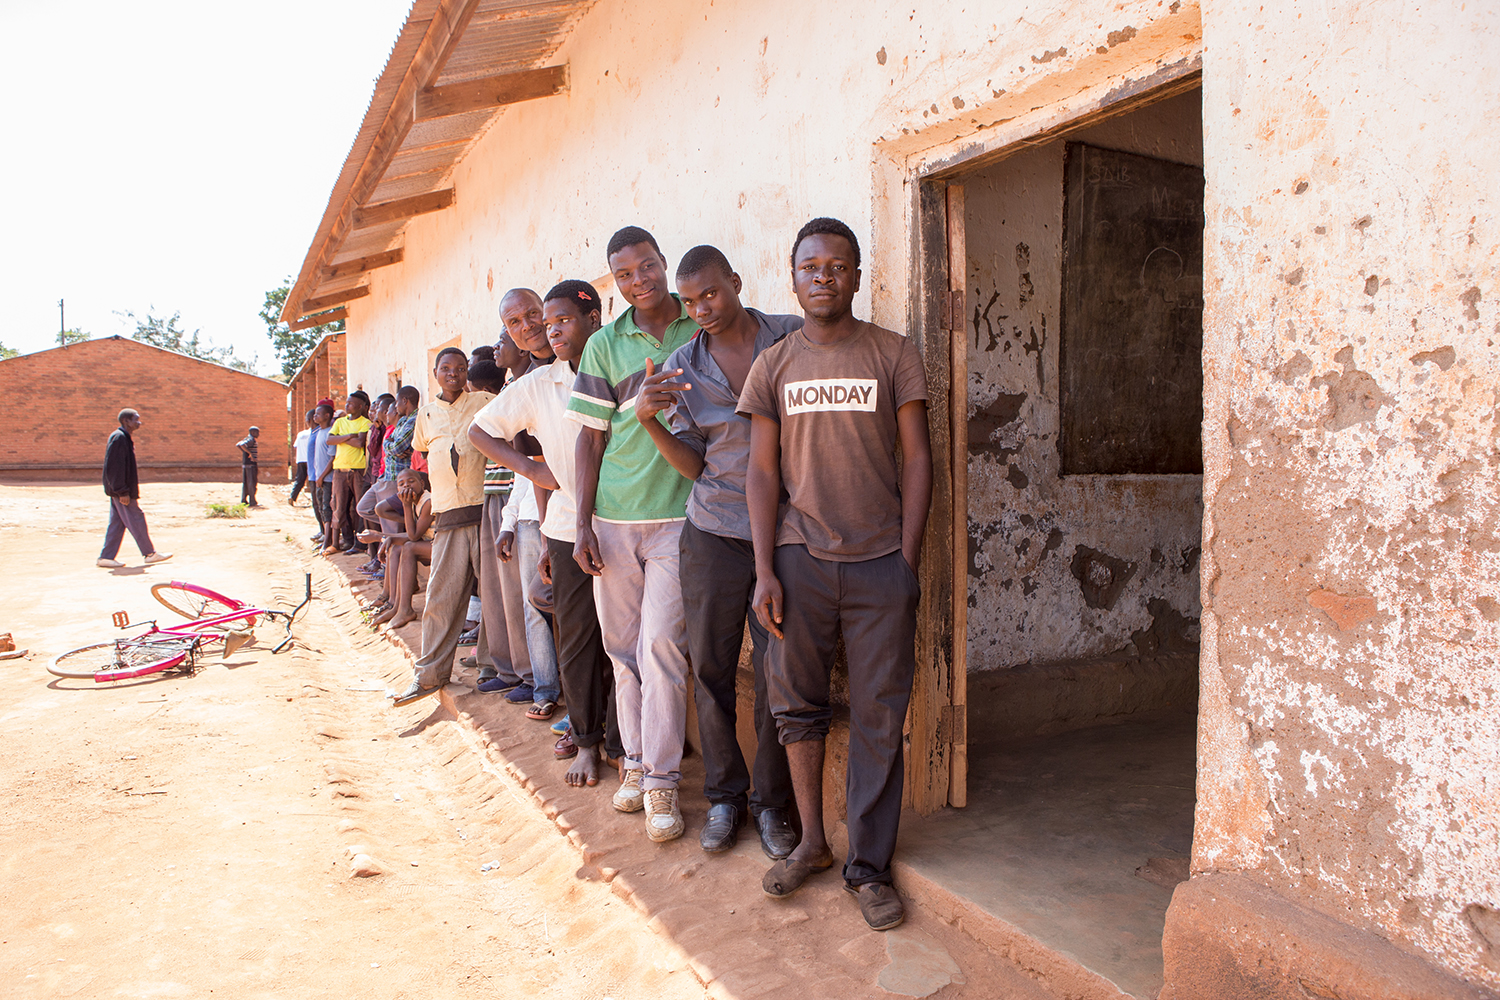 Men lining up for health care malawi